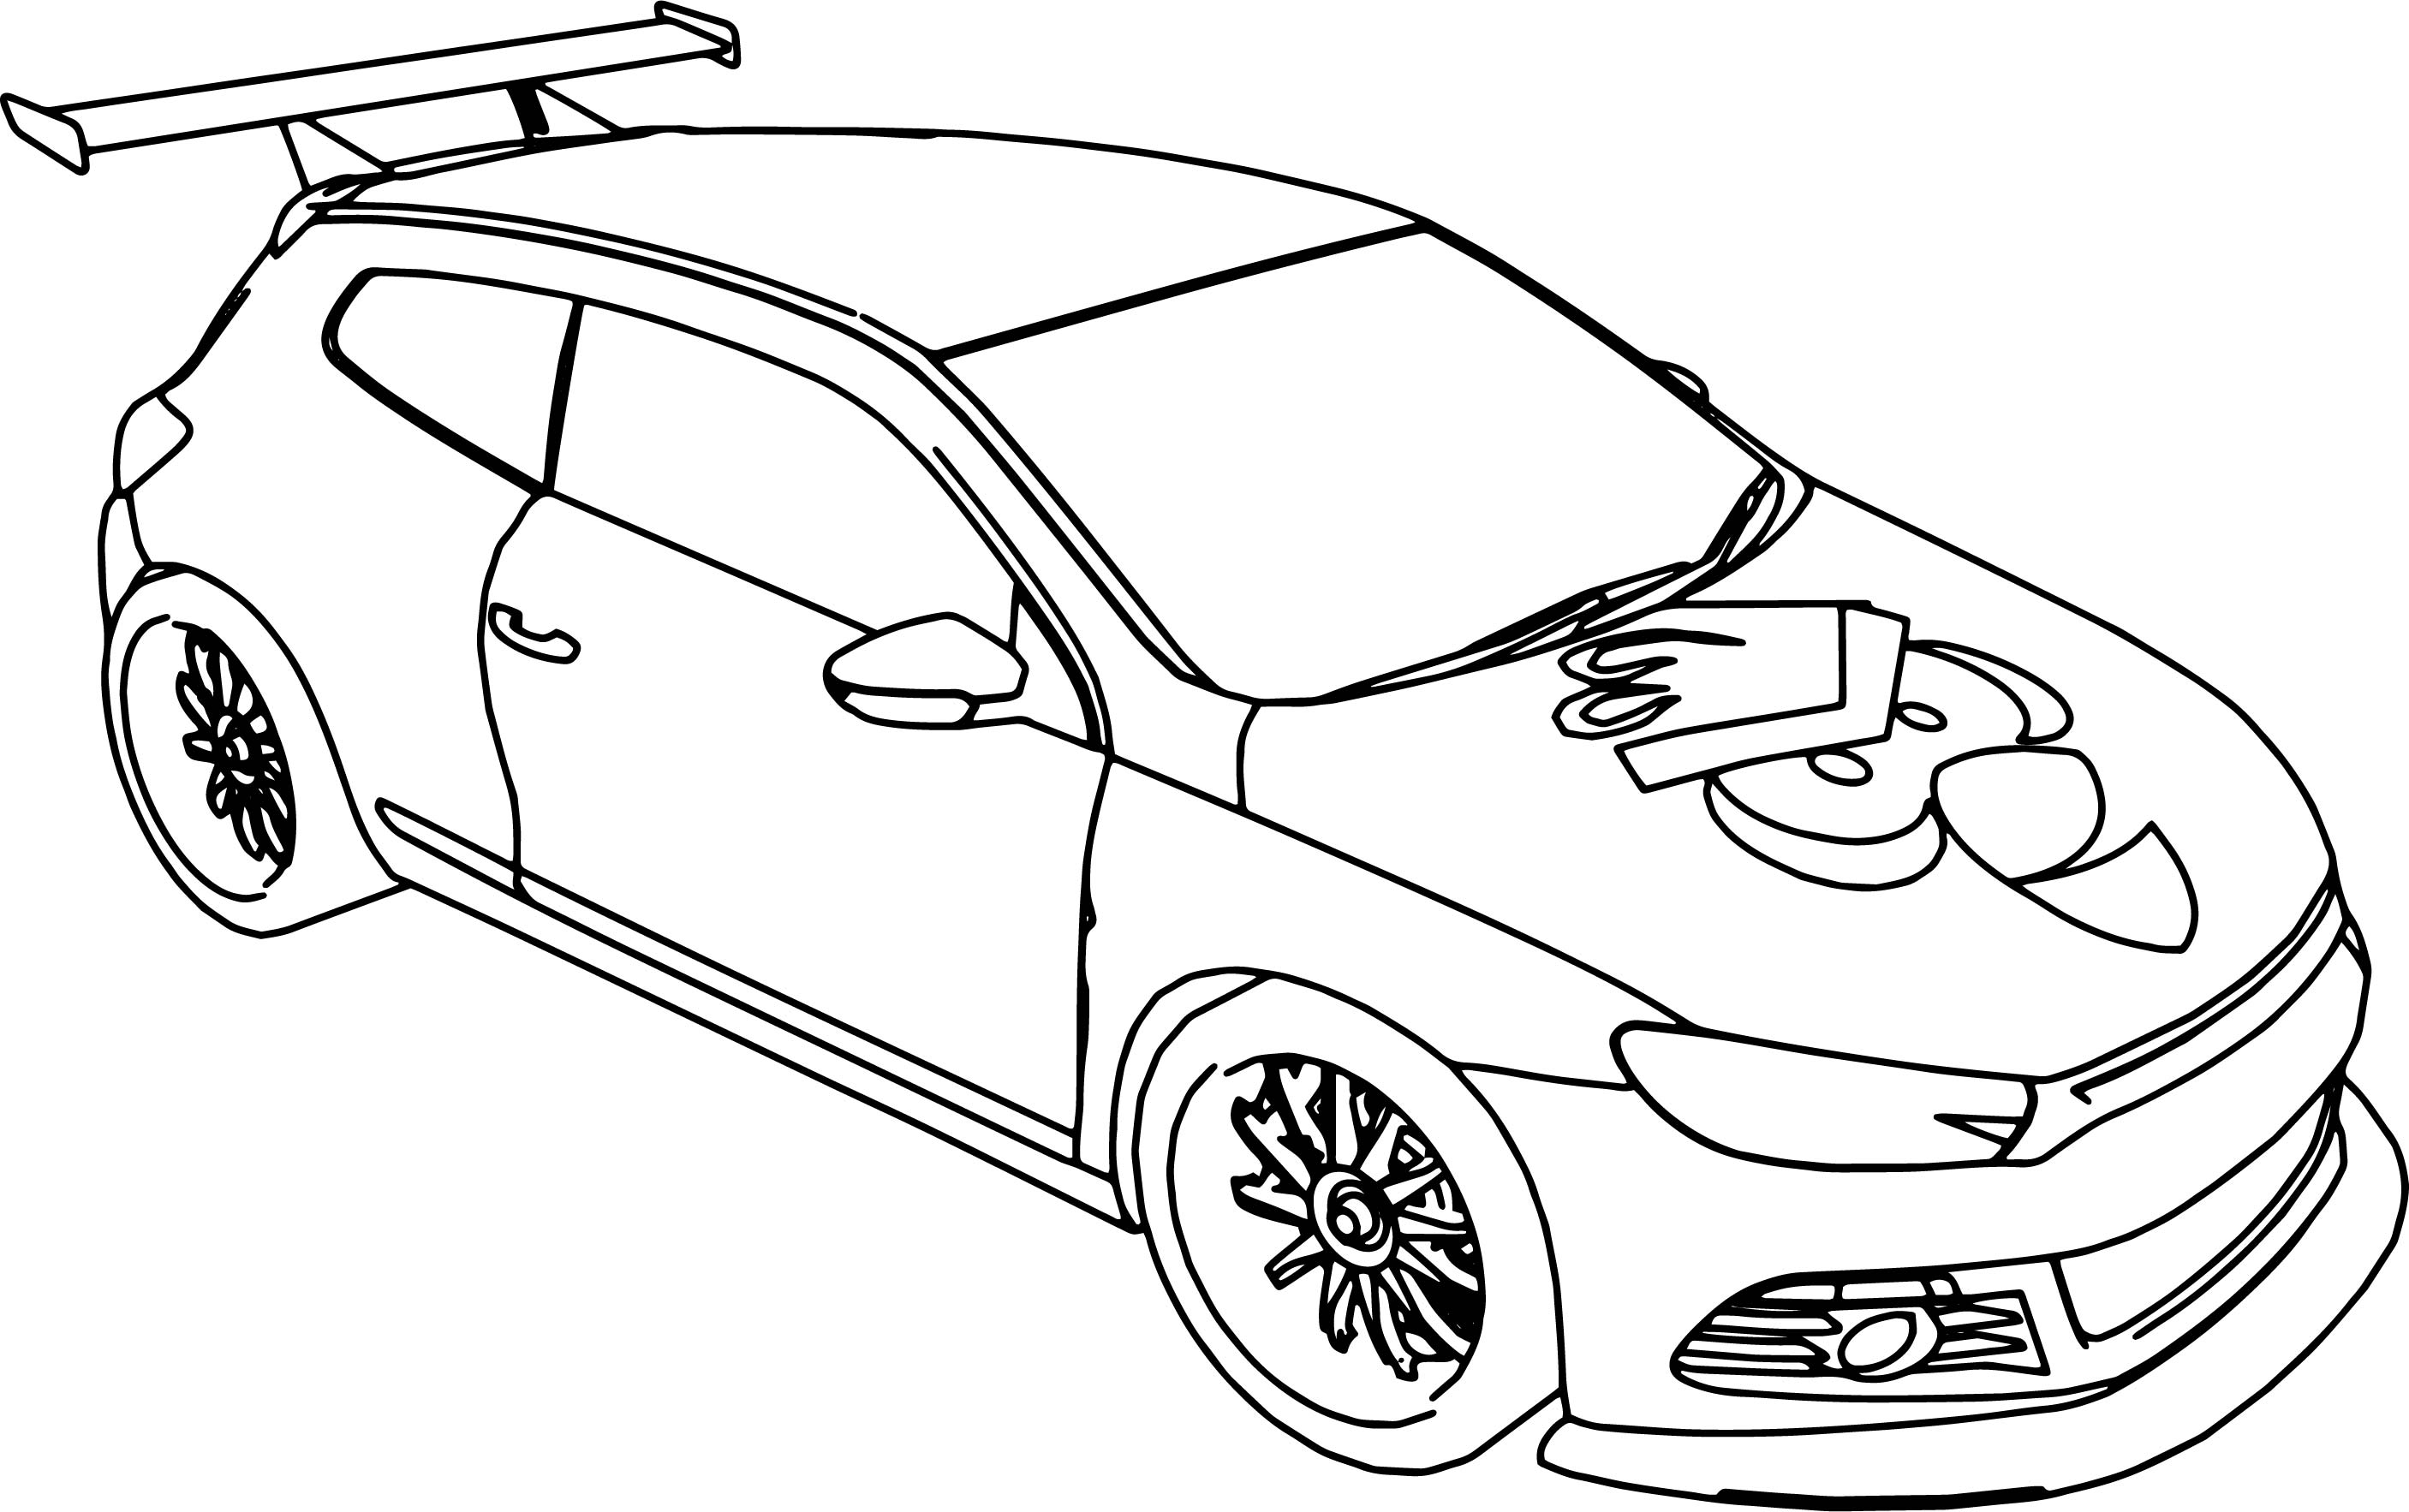 cartoon cukatoo coloring pages